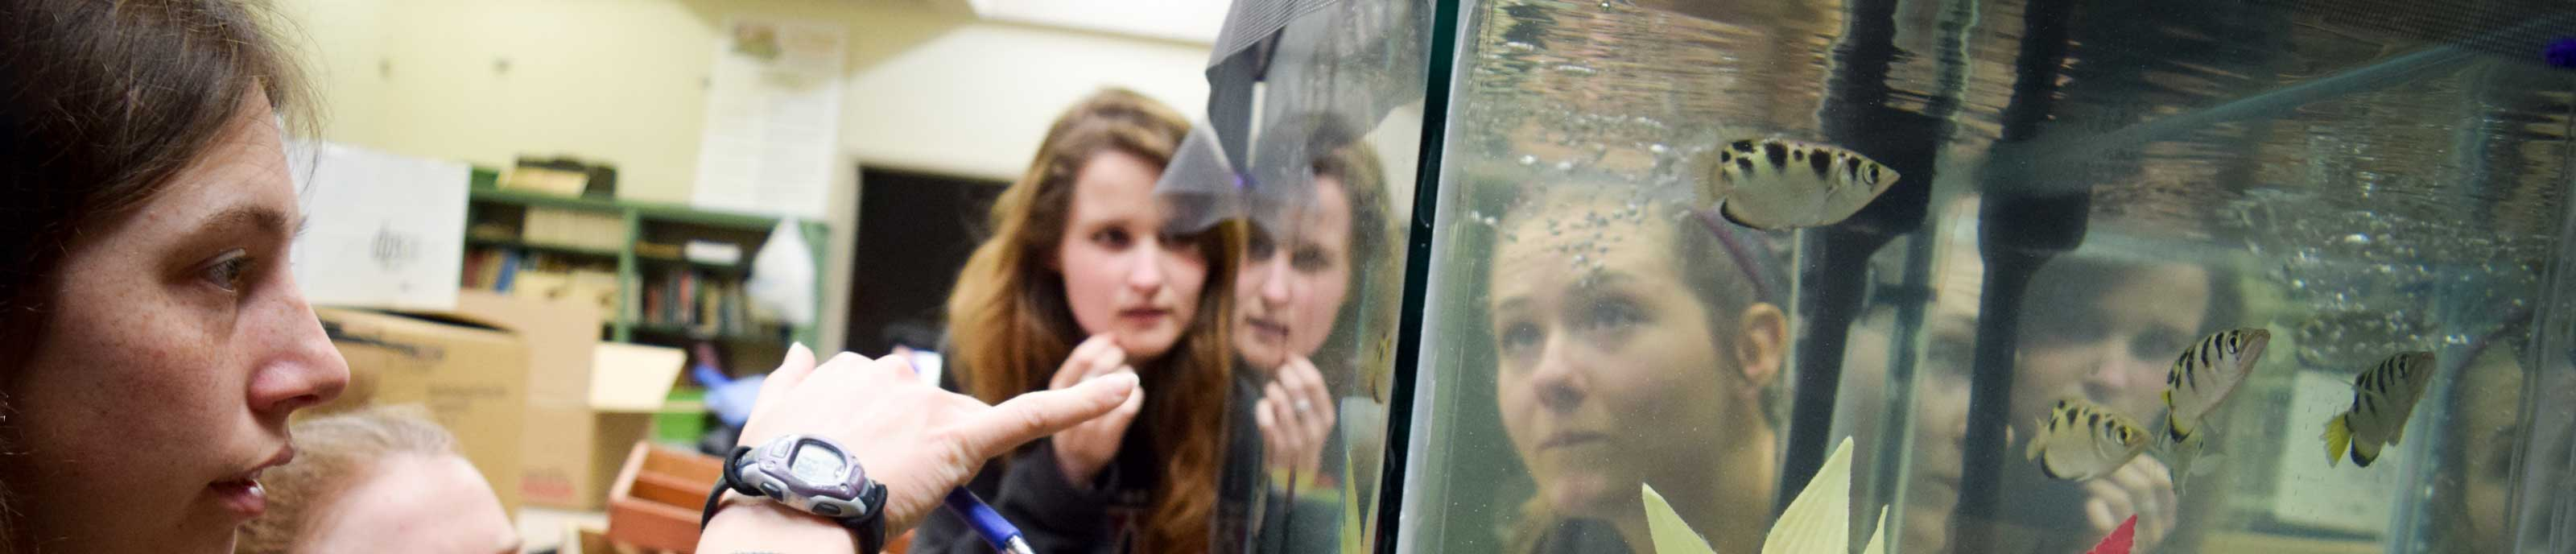 Biology students examine fish in an aquarium